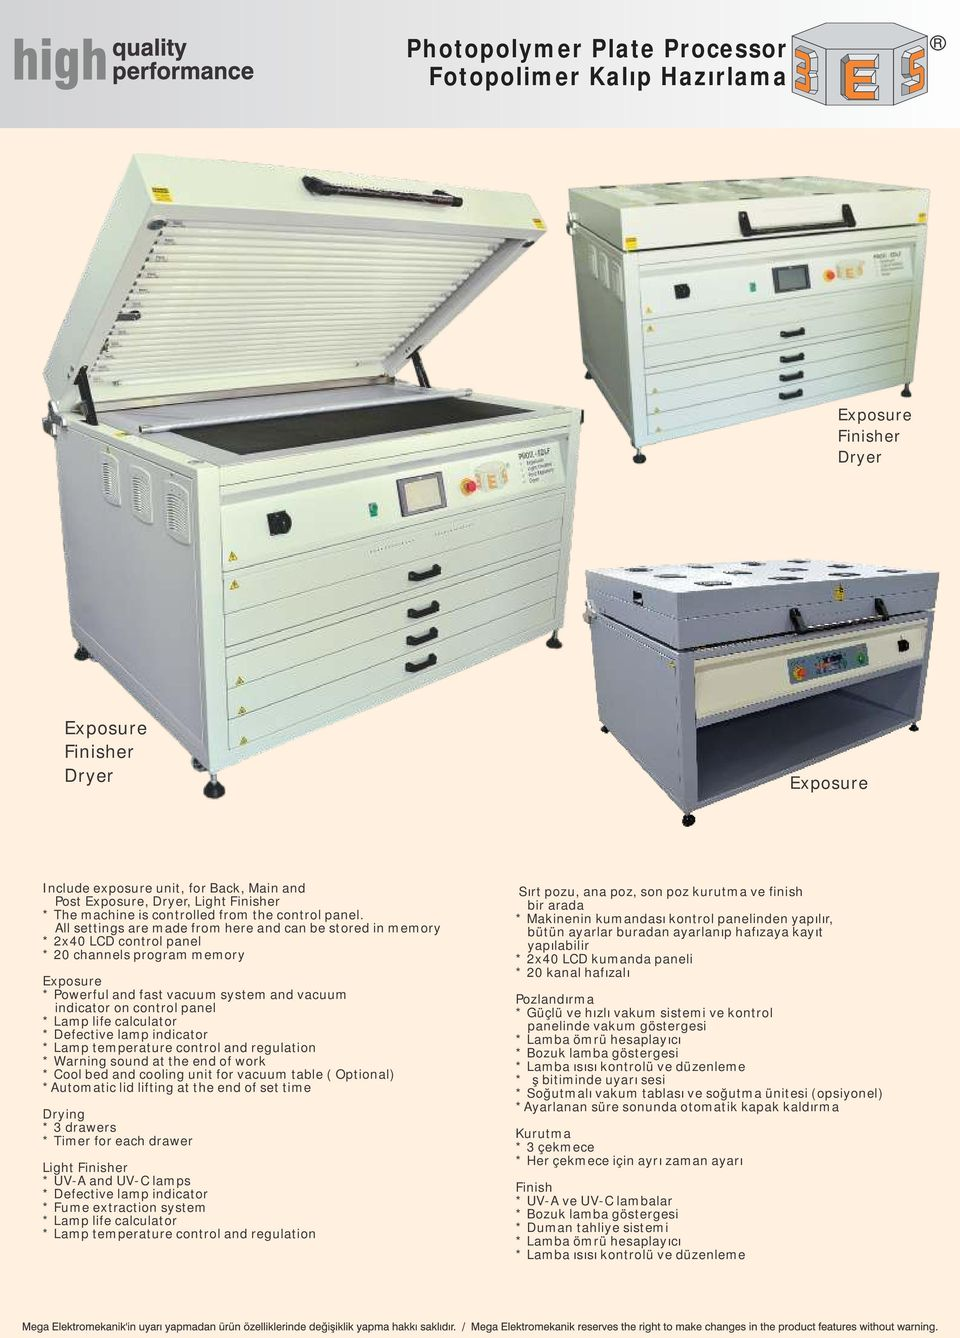 calculator * Lamp temperature control and regulation * Warning sound at the end of work * Cool bed and cooling unit for vacuum table ( Optional) *Automatic lid lifting at the end of set time * 3